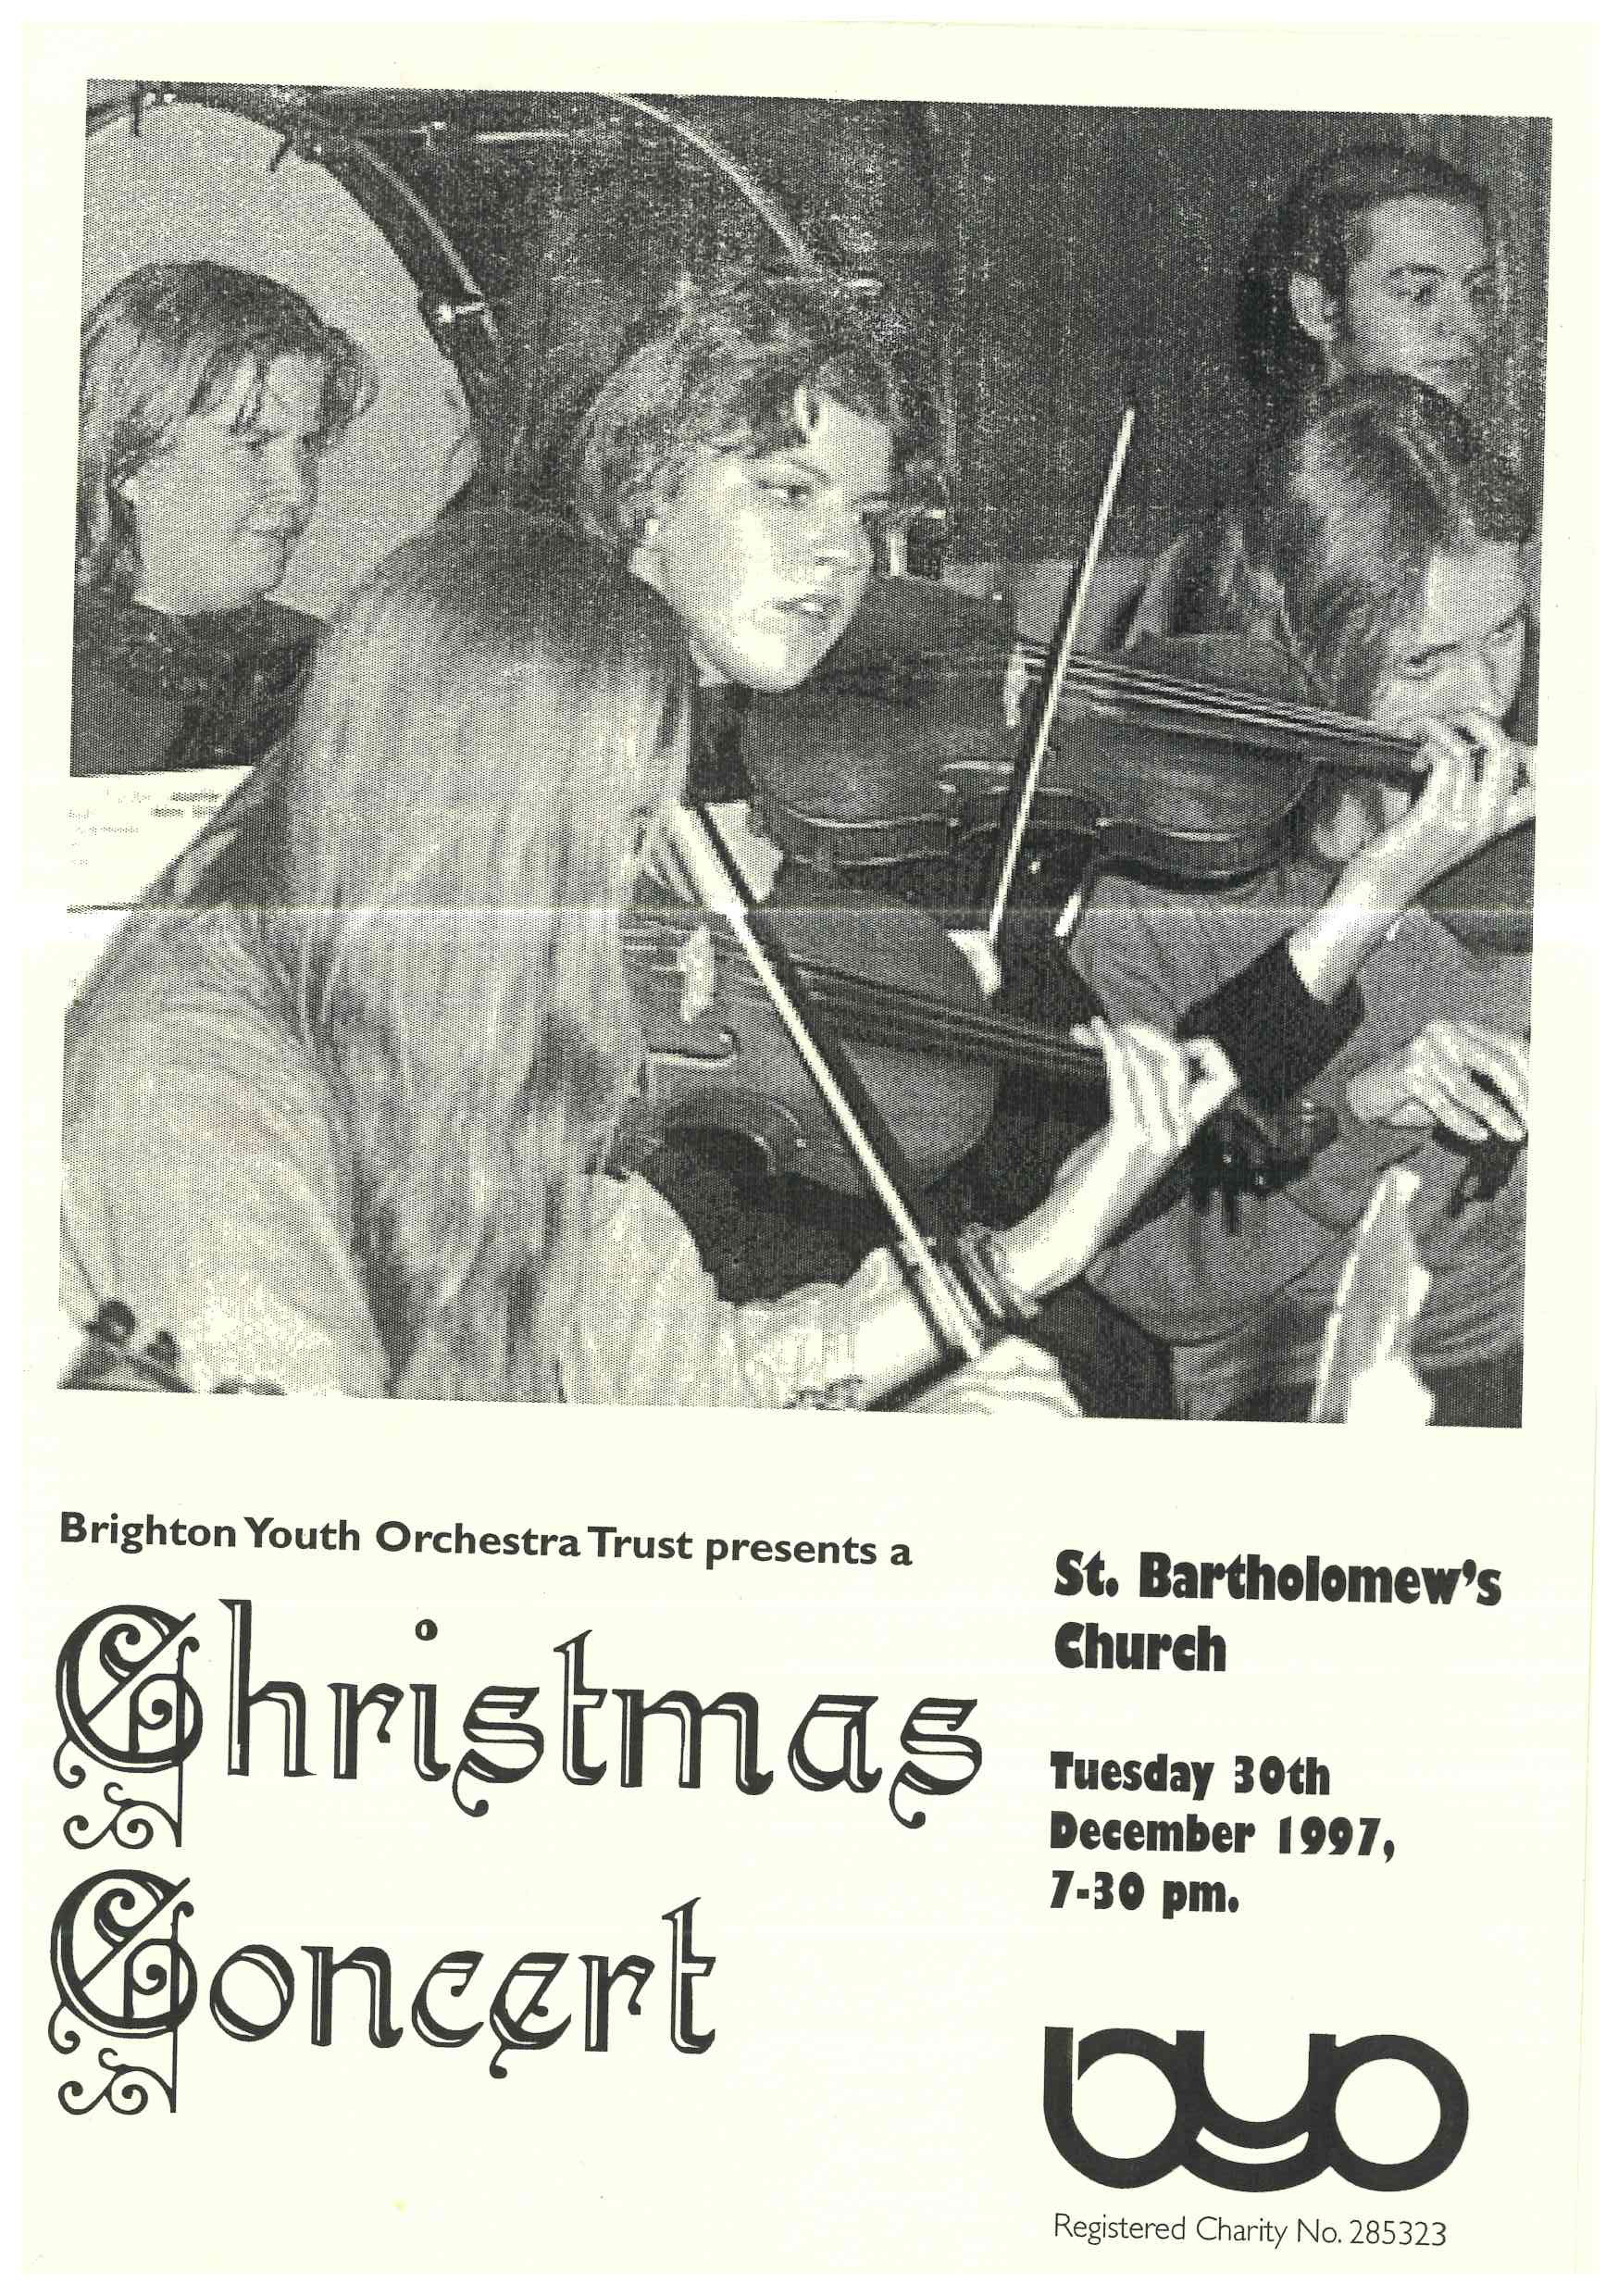 00316-BYO Christmas Concert, 30th December 1997.jpg